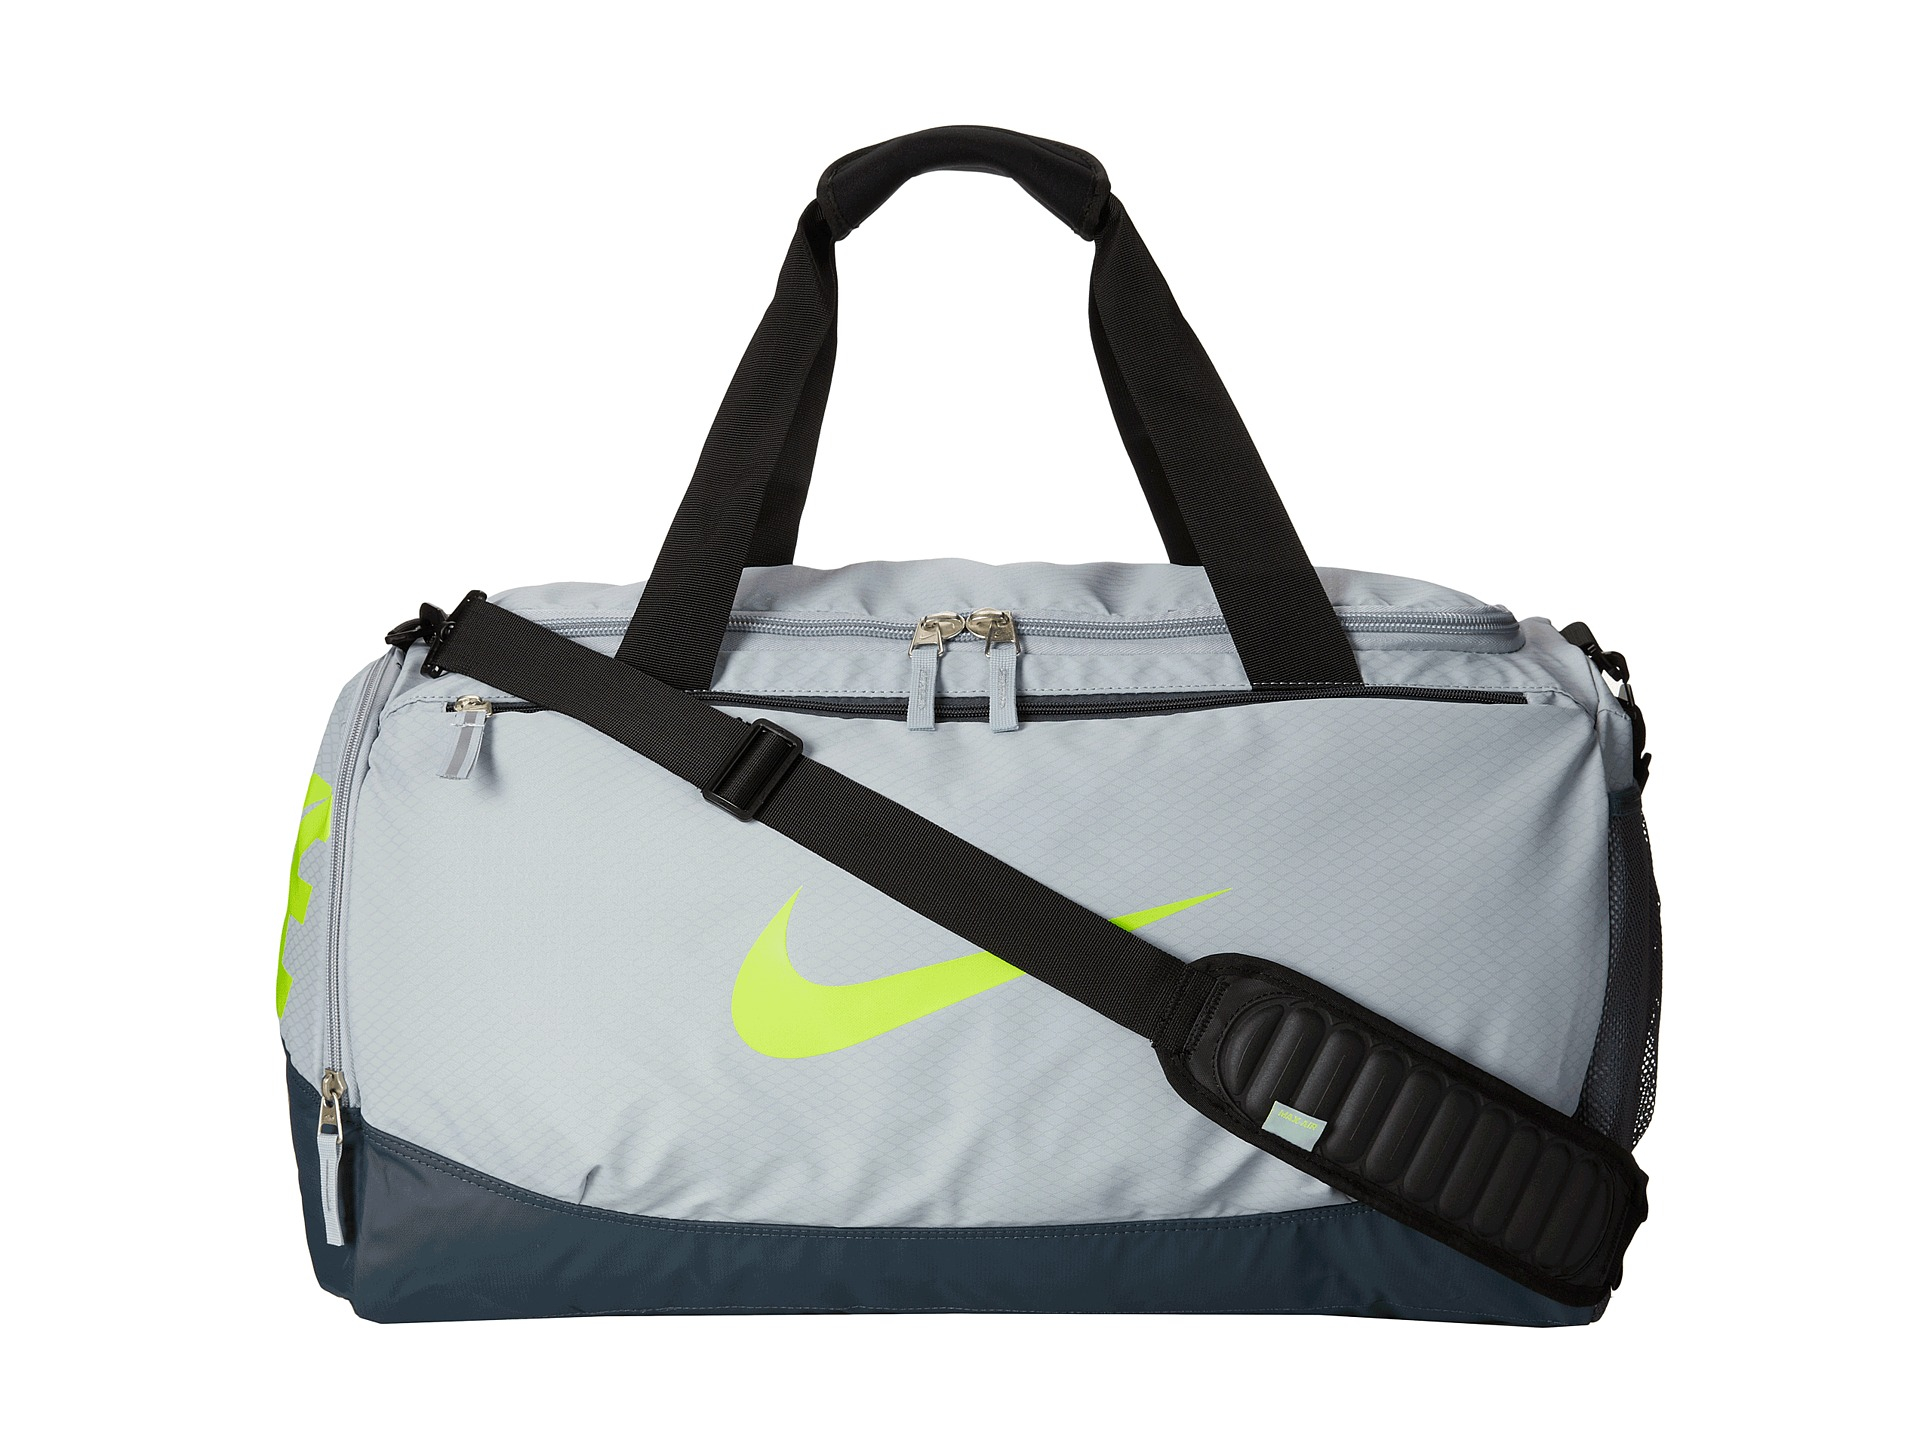 cdb9404d61 Nike Team Training Max Air Medium Duffel Bag Black